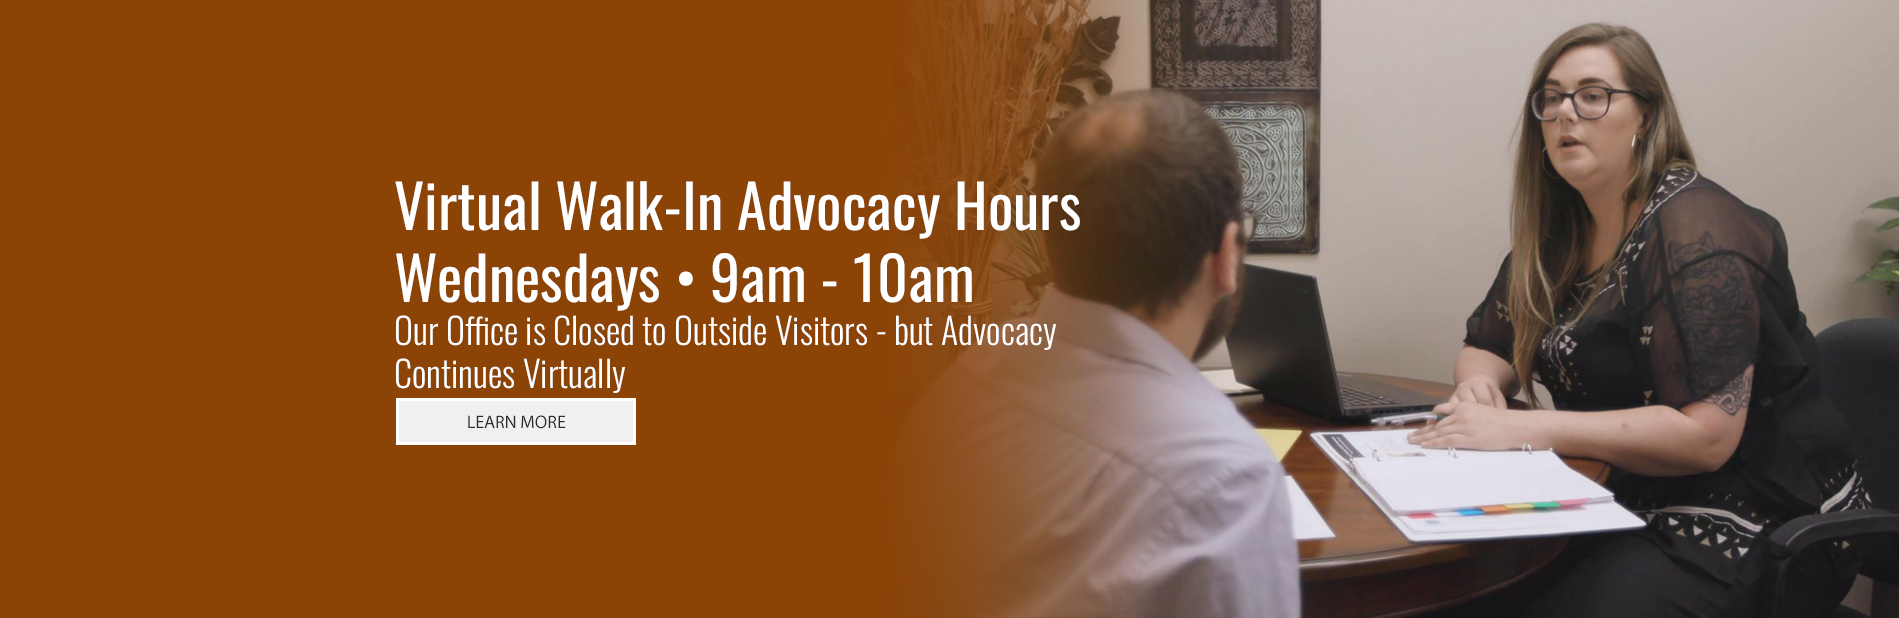 Virtual Walk-in Advocacy Hours - Wednesdays 9-10am - Office closed to outside visitors - advocacy continues virtually. Learn More